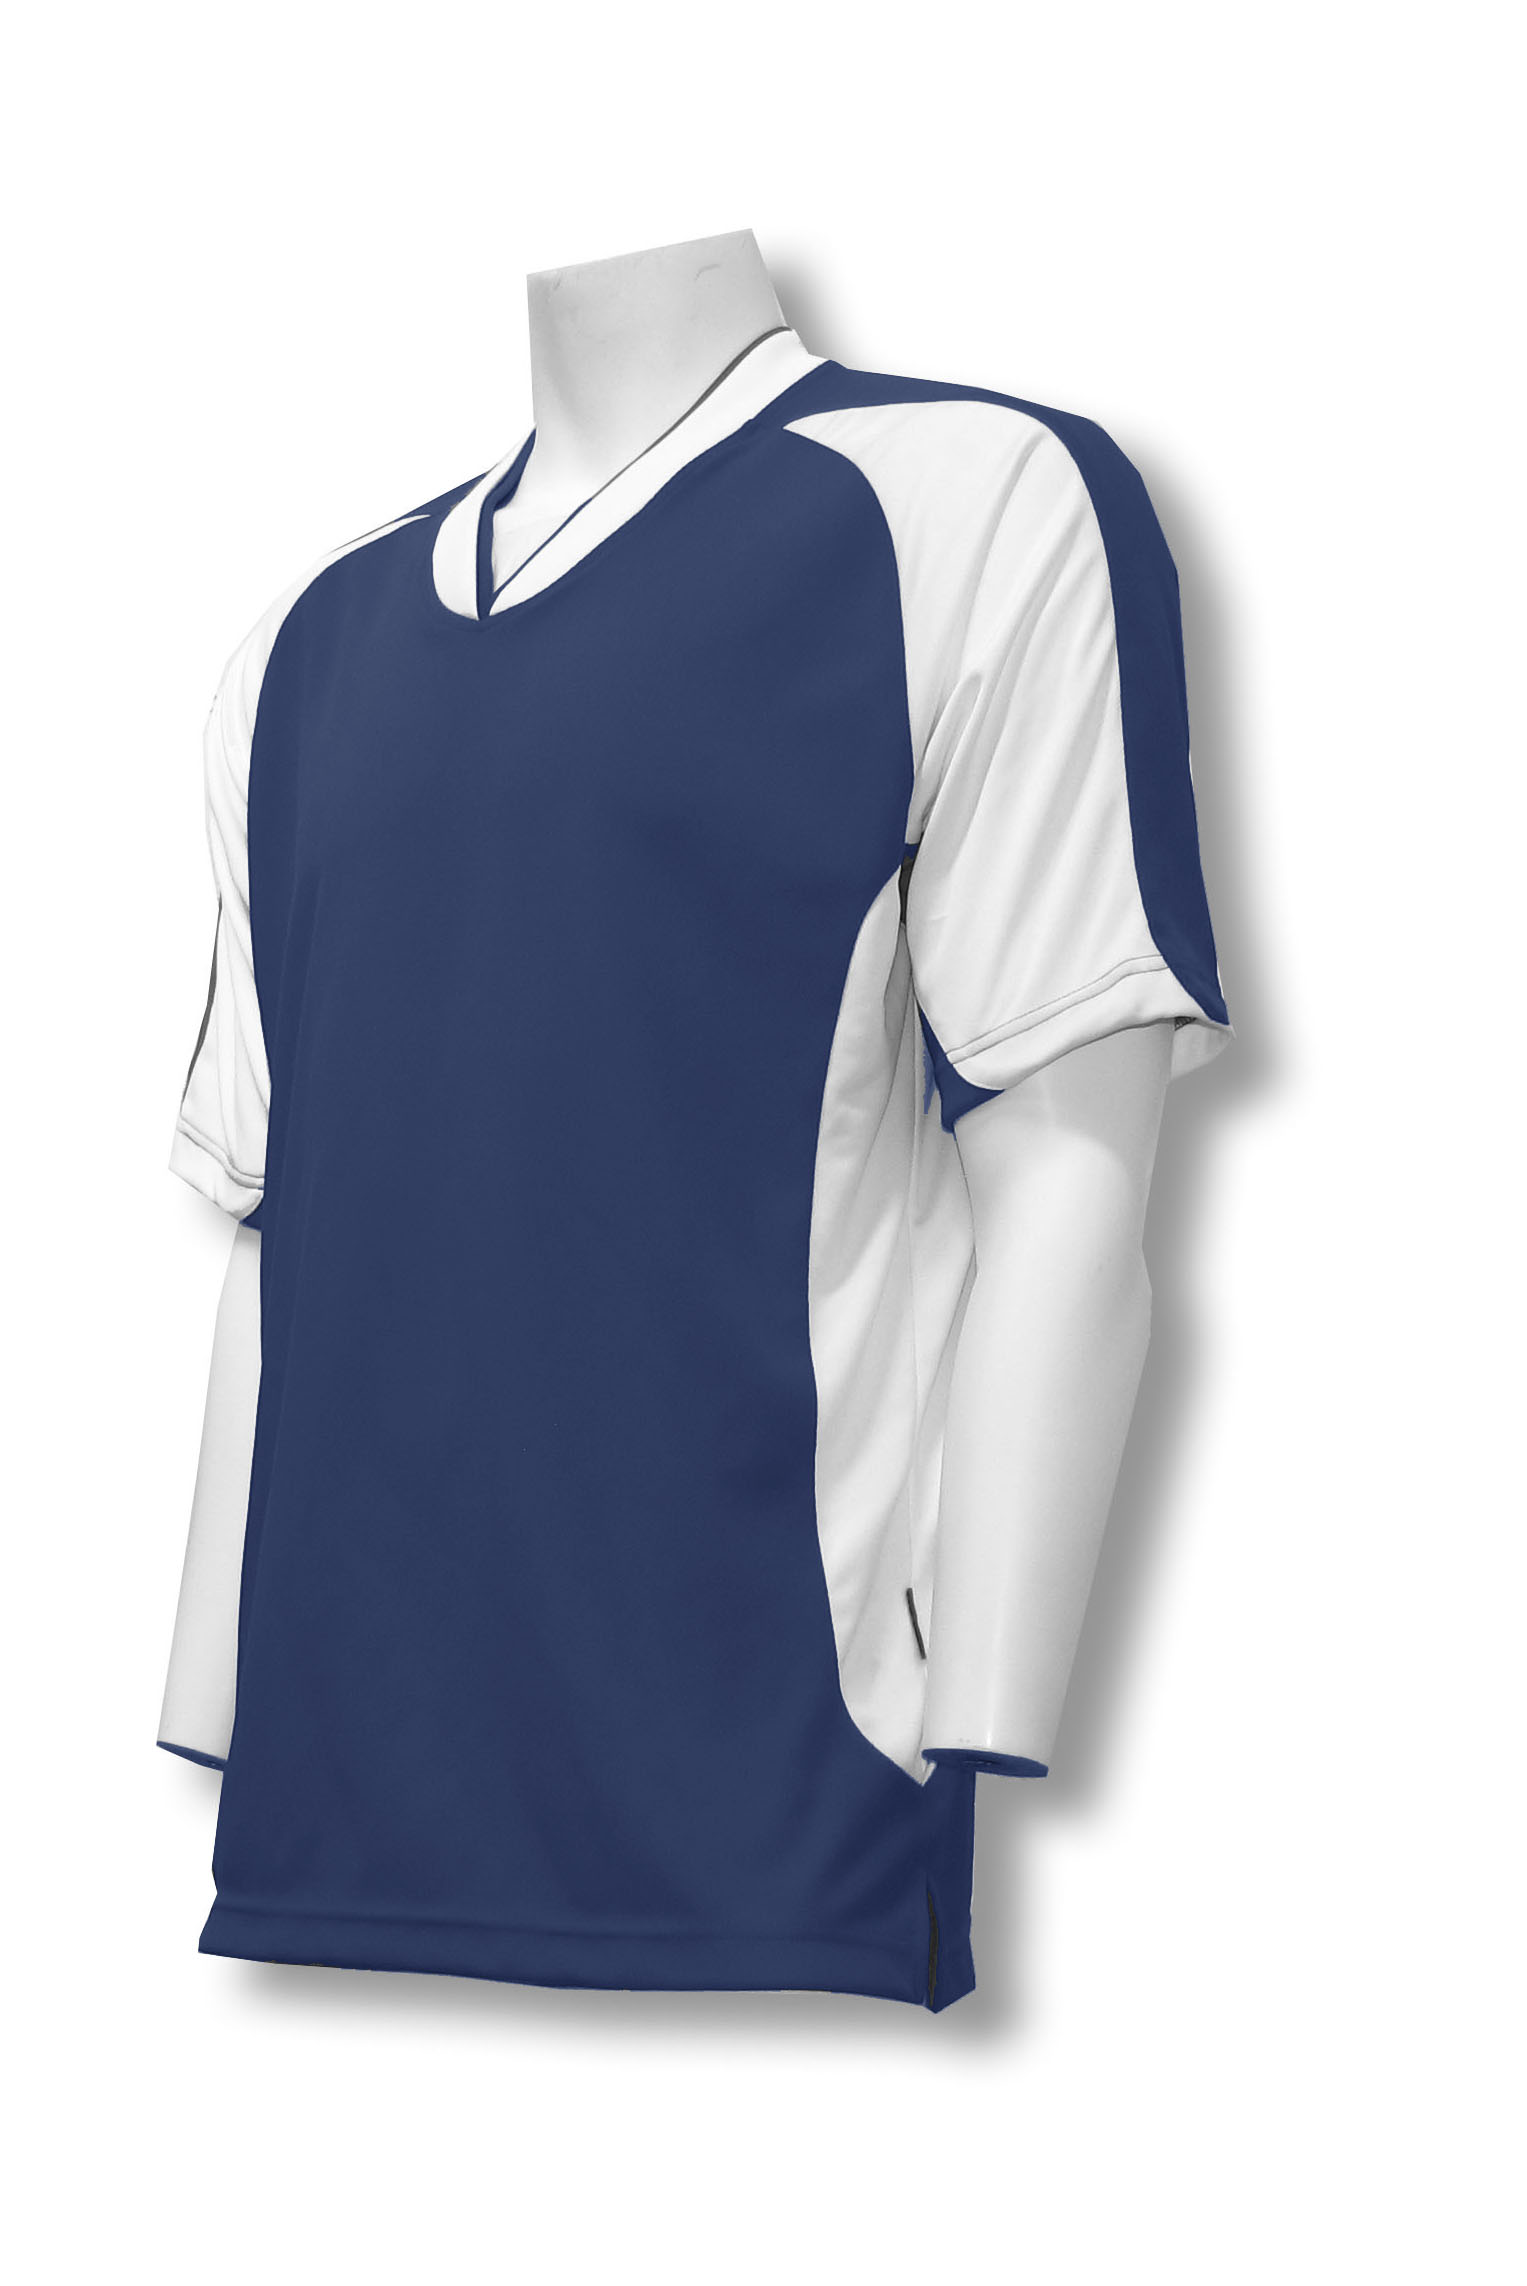 Falcon / Sweeper soccer jersey in navy by Code Four Athletics